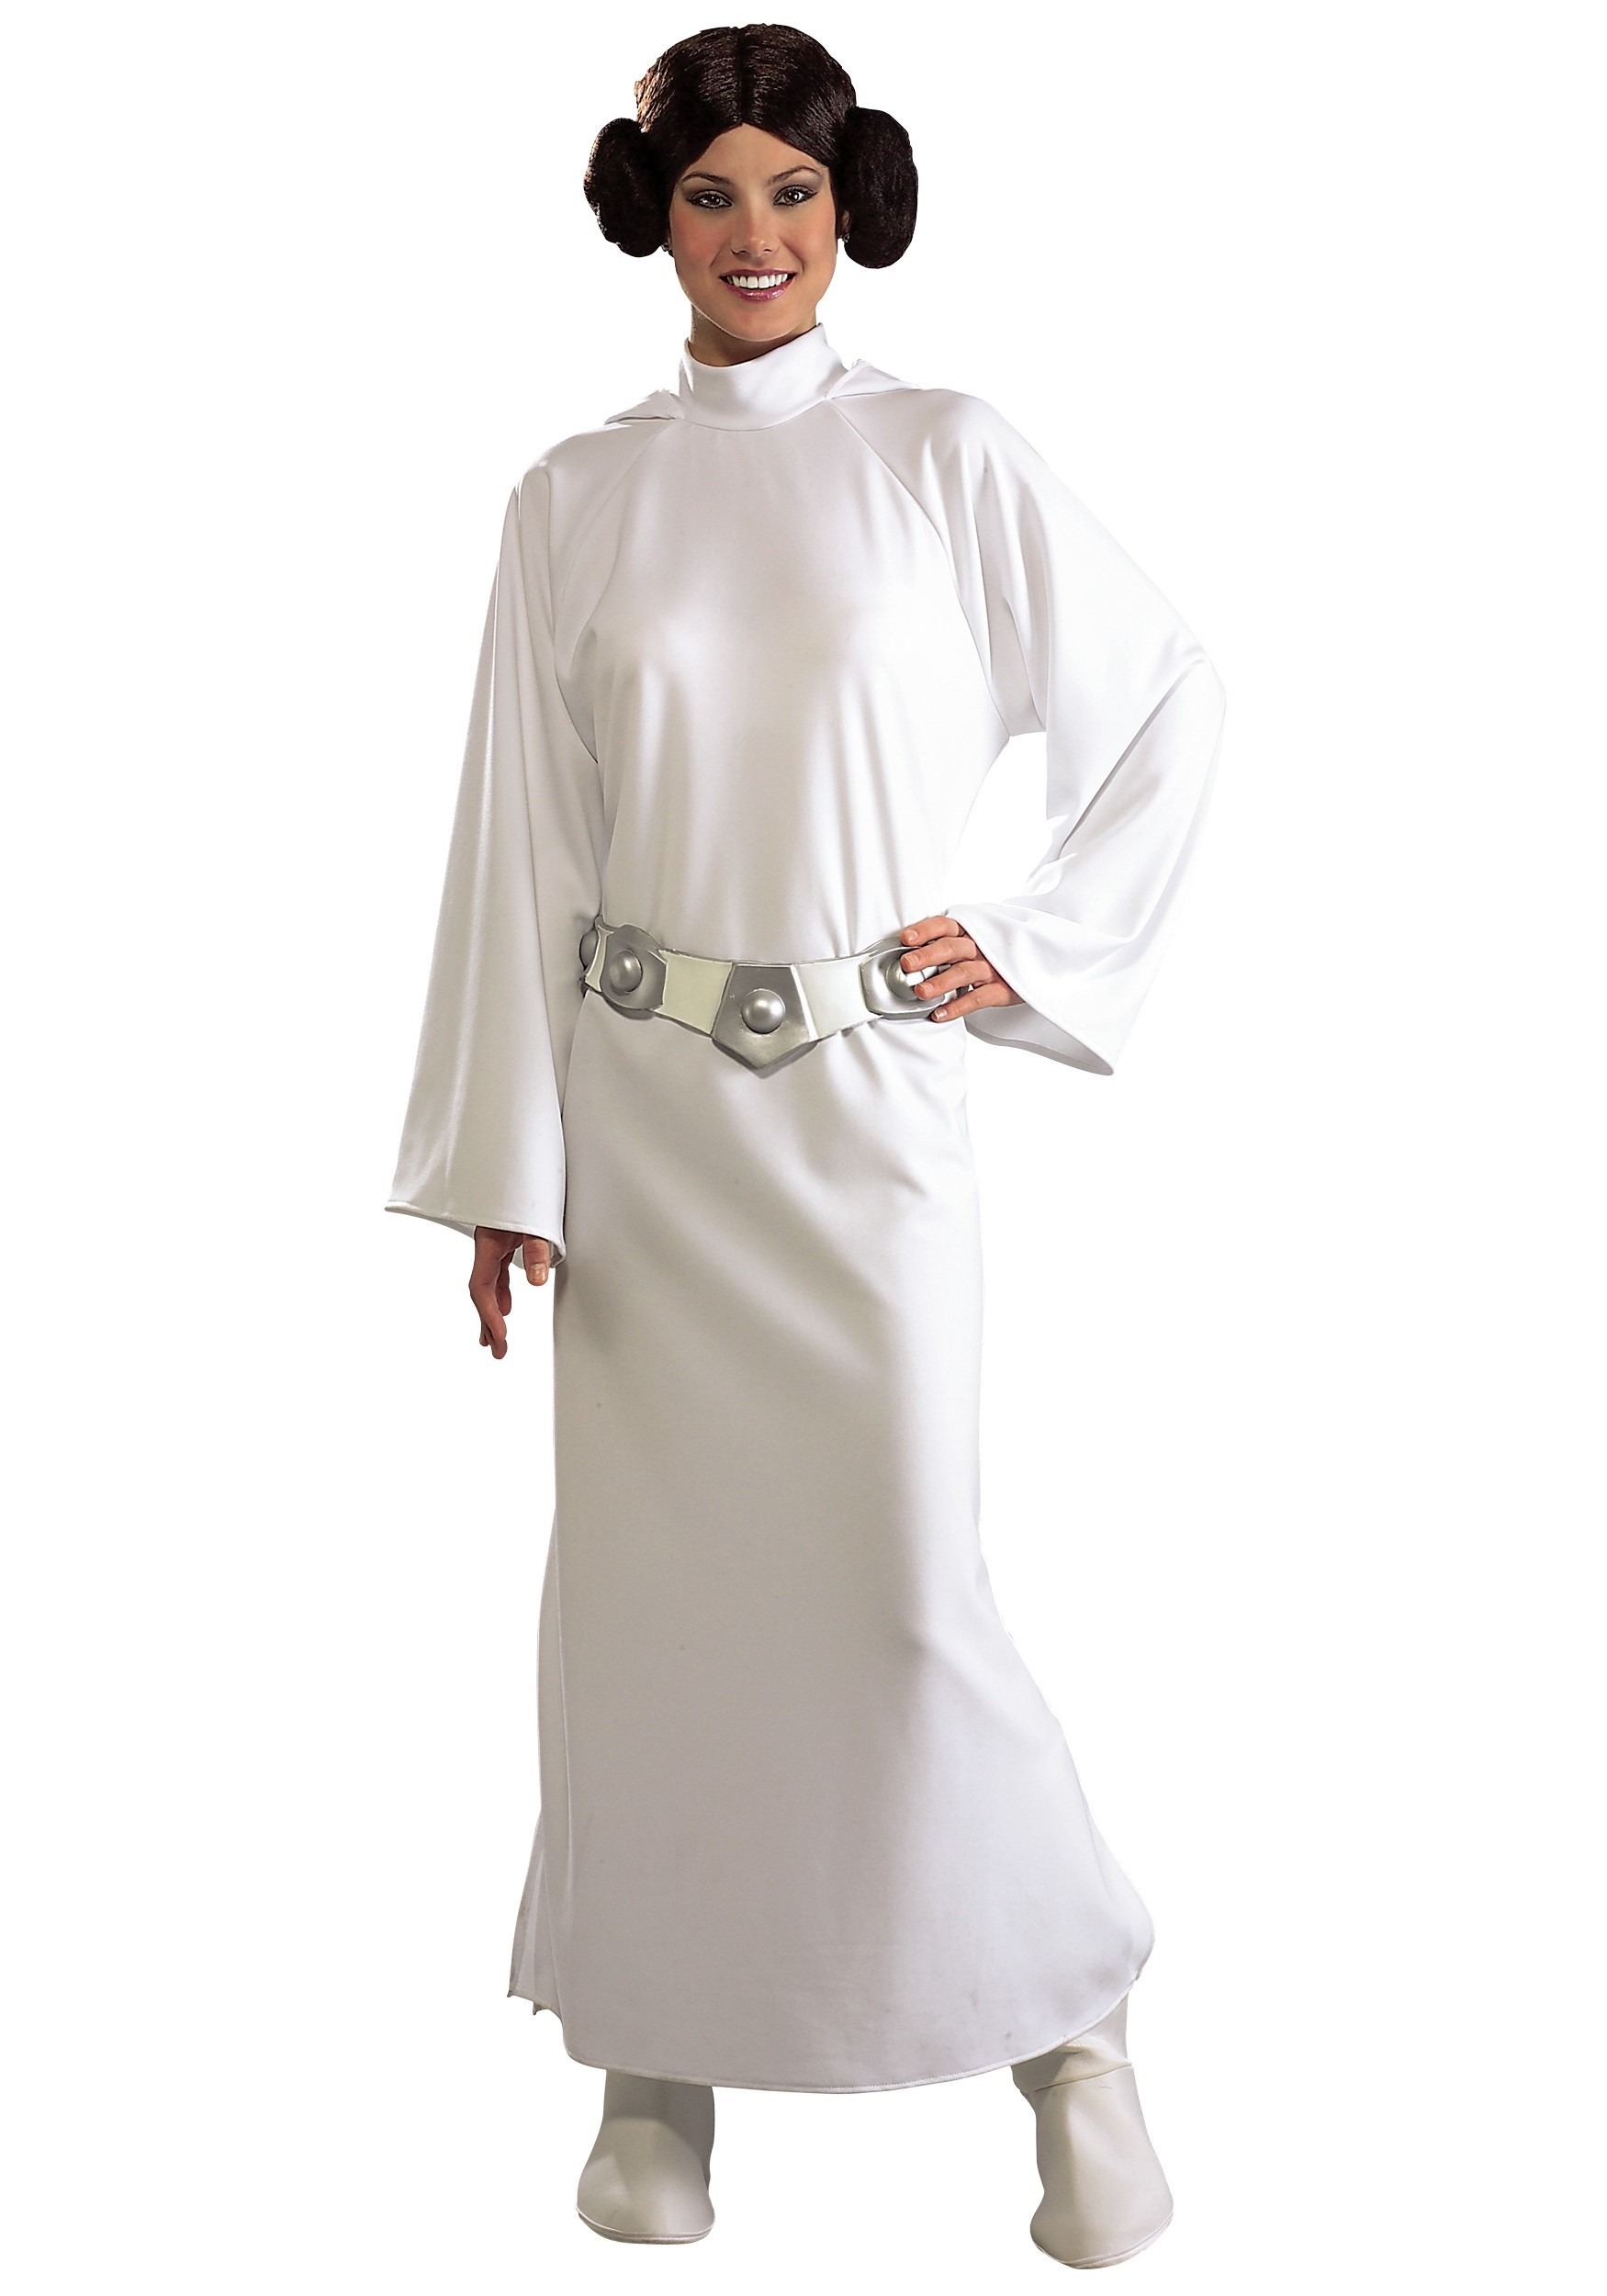 Women's Princess Leia Costume